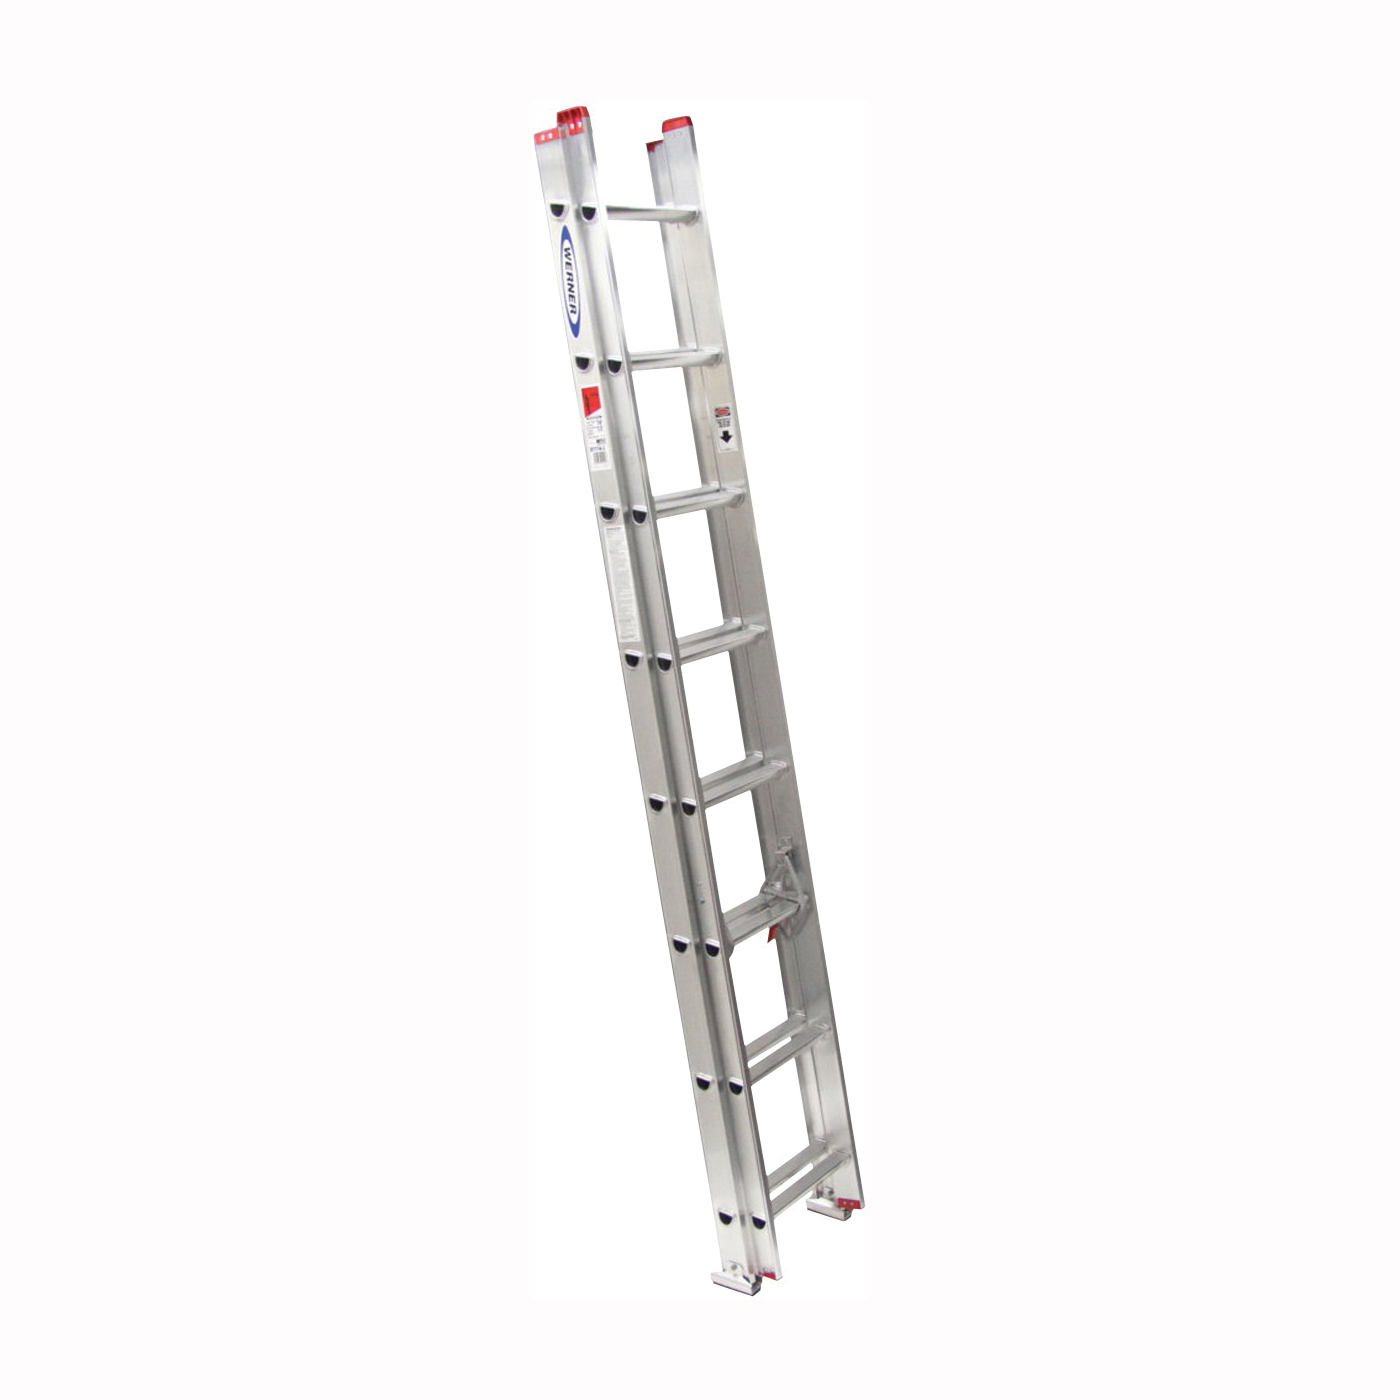 Picture of WERNER D1116-2 Extension Ladder, 15 ft H Reach, 200 lb, Aluminum